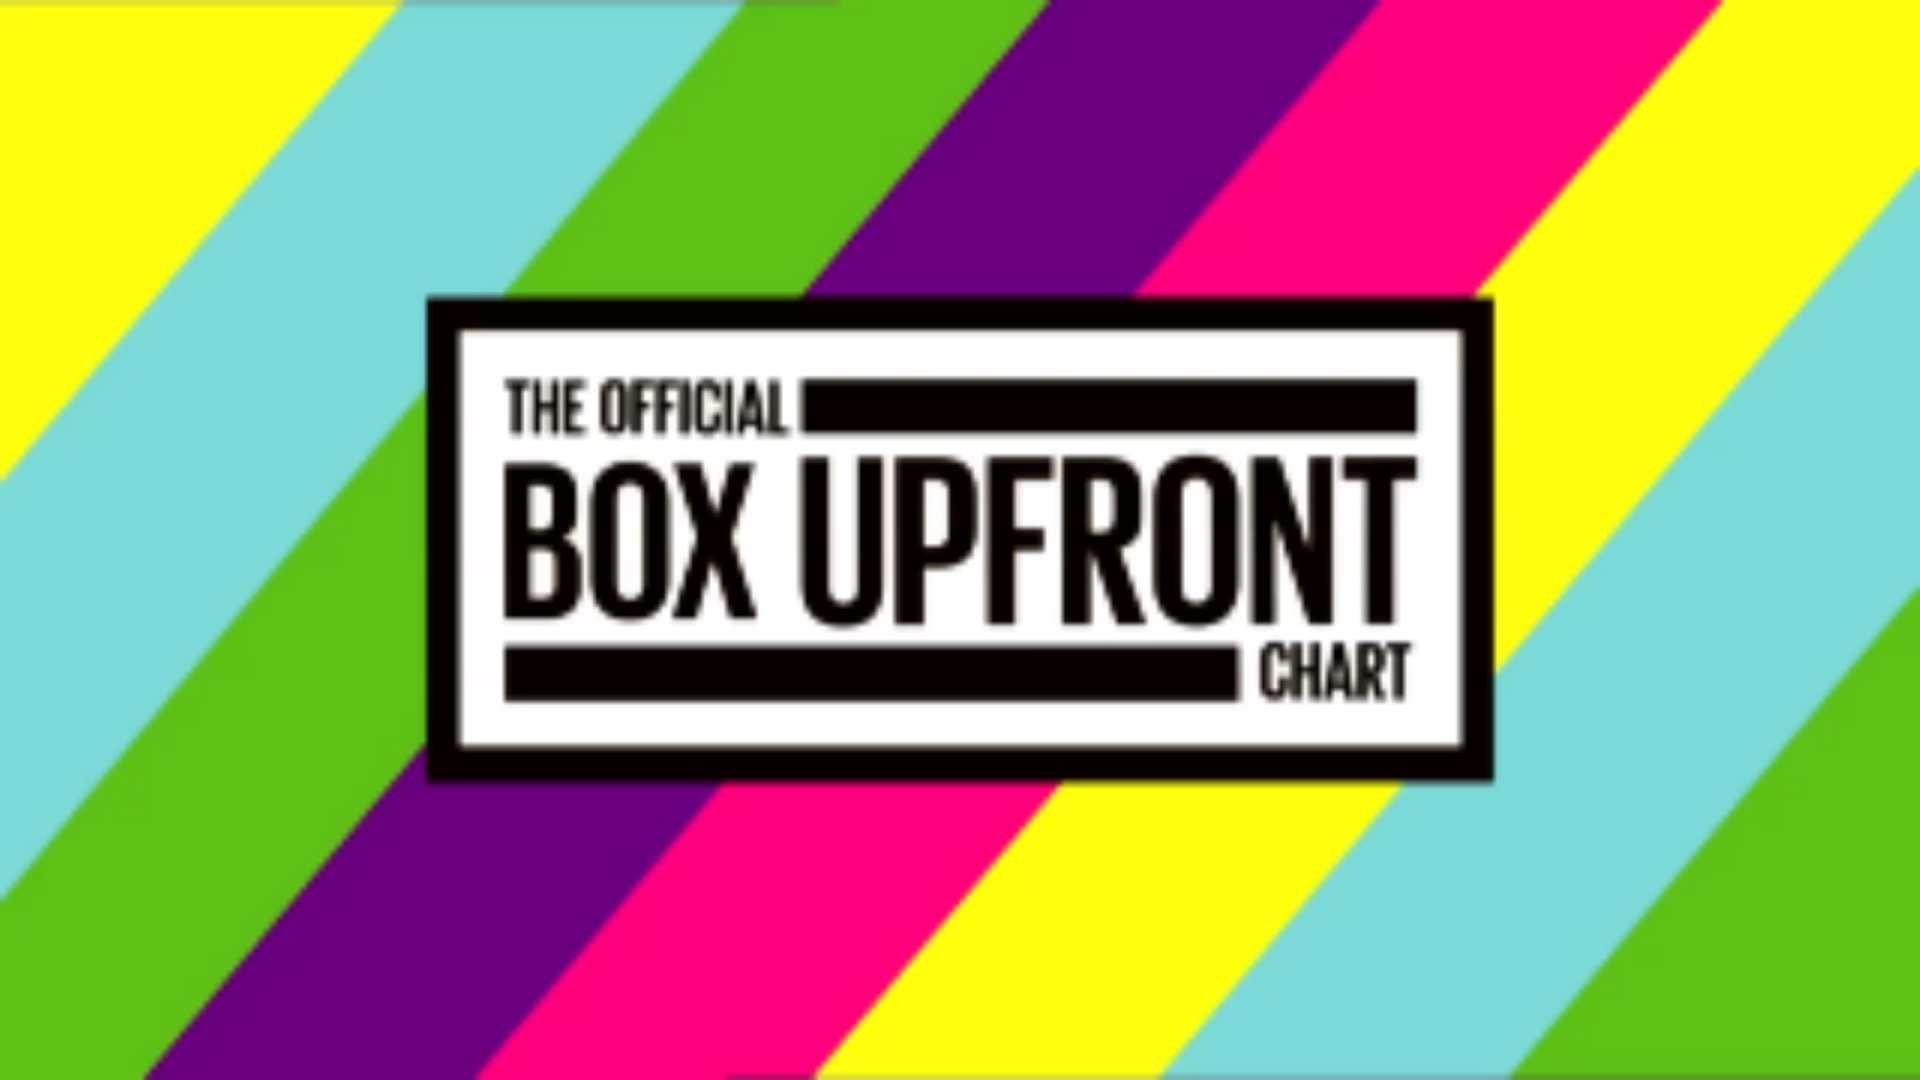 Official Box Upfront Chart